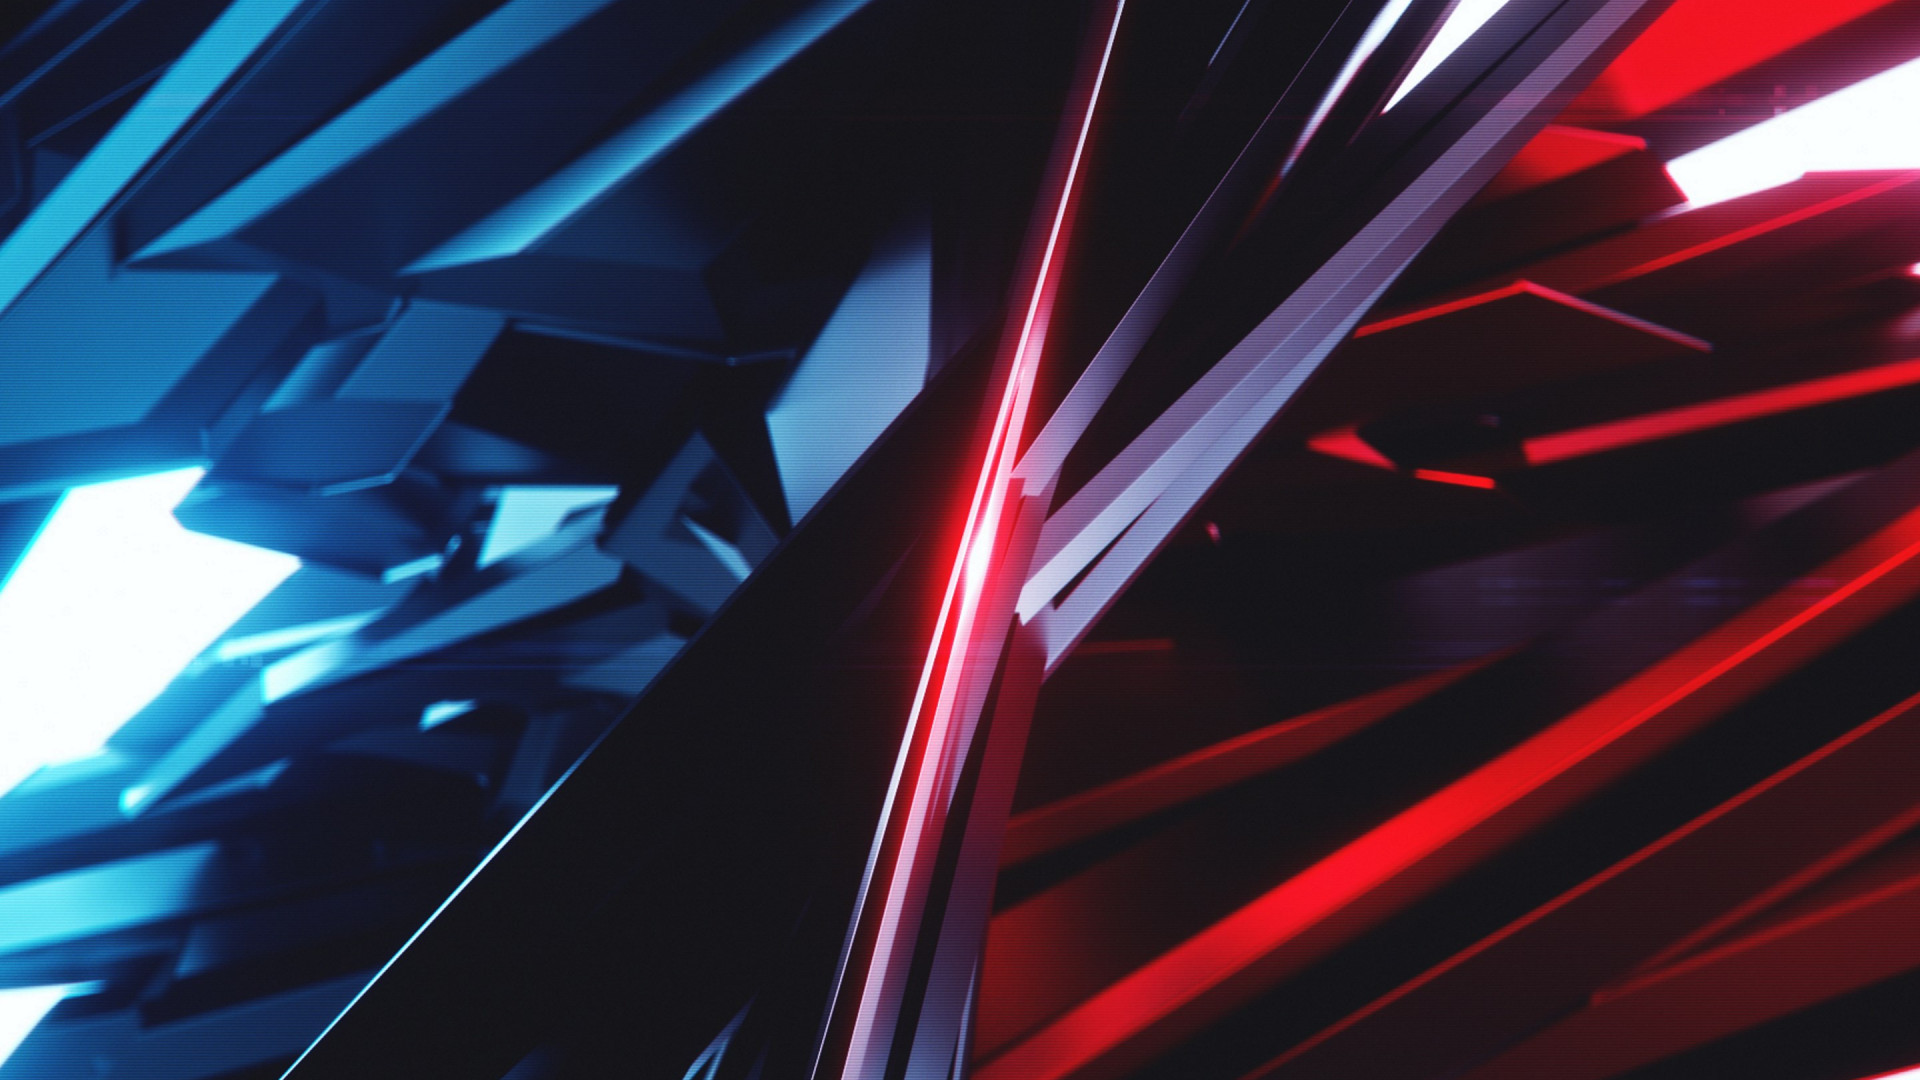 Download Wallpaper Abstract 3d Blue Vs Red 1920x1080